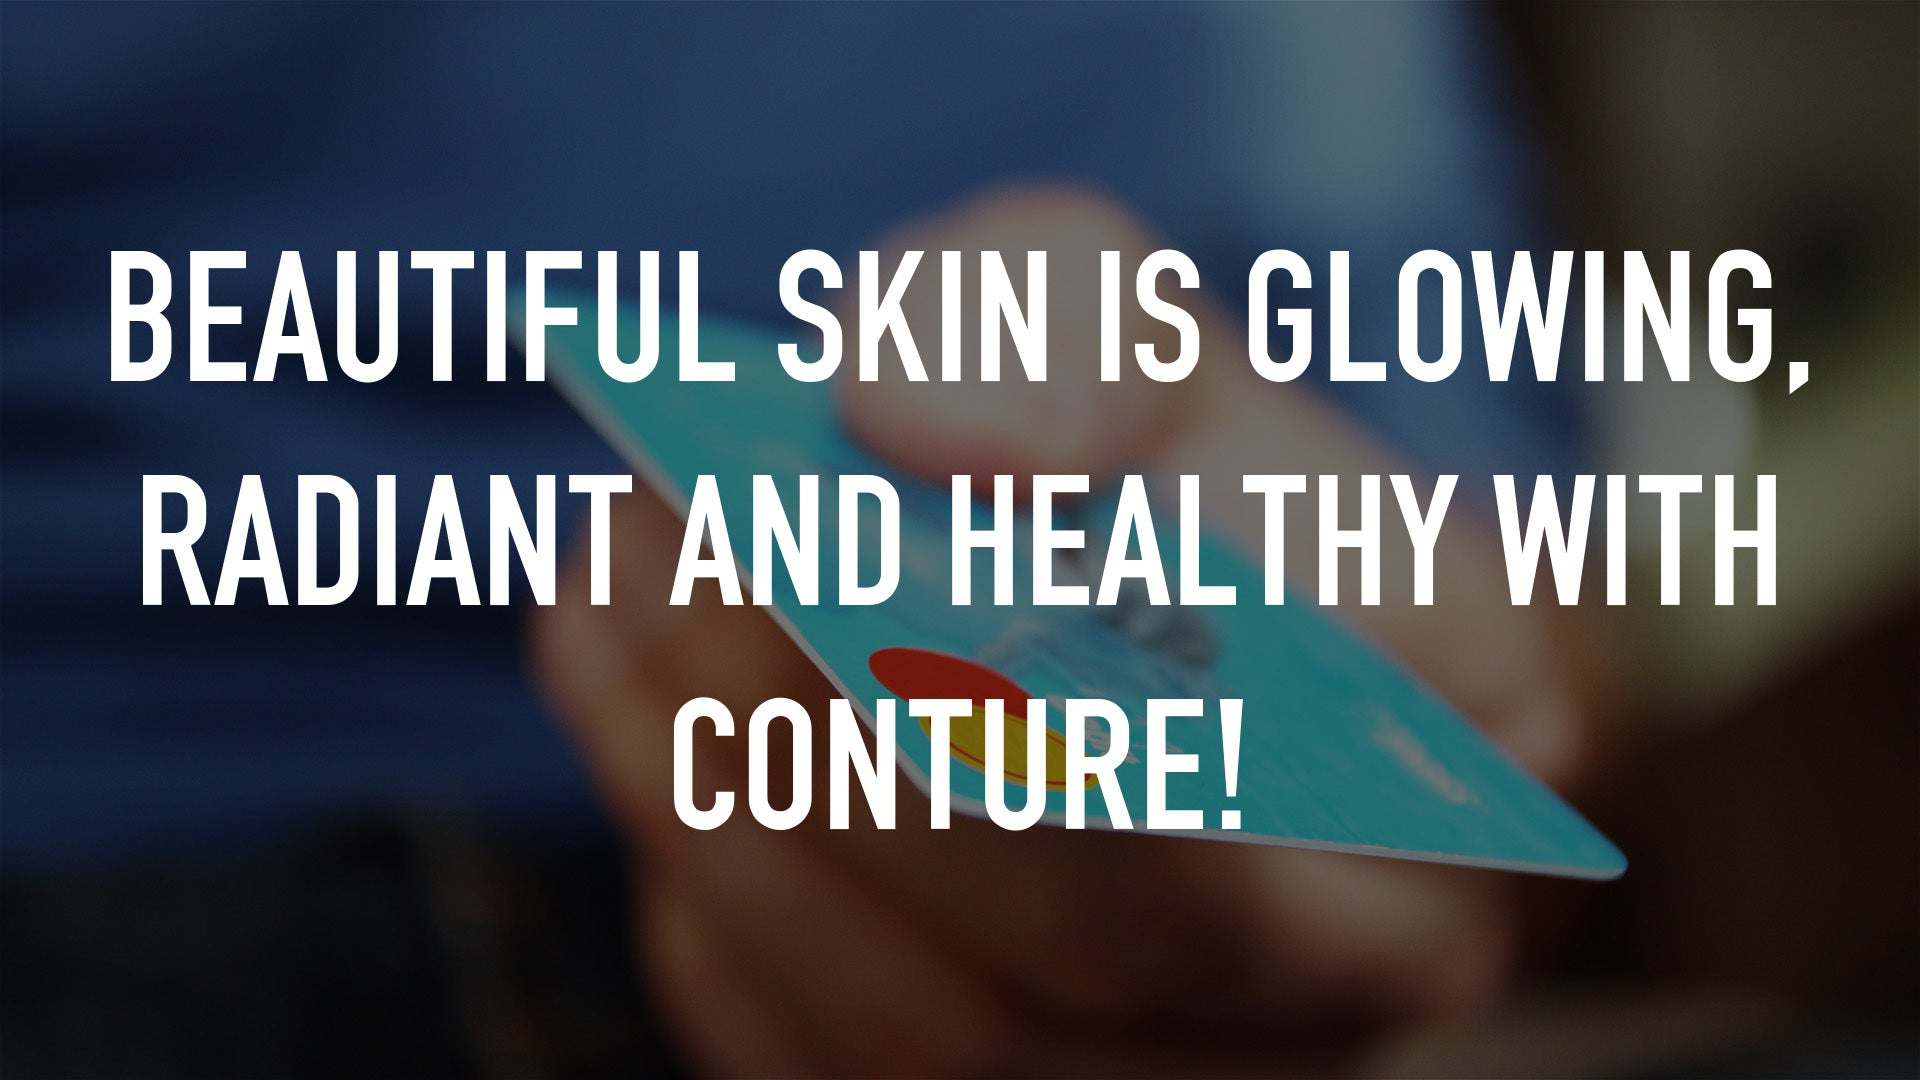 Beautiful skin is glowing, radiant and healthy with Conture!